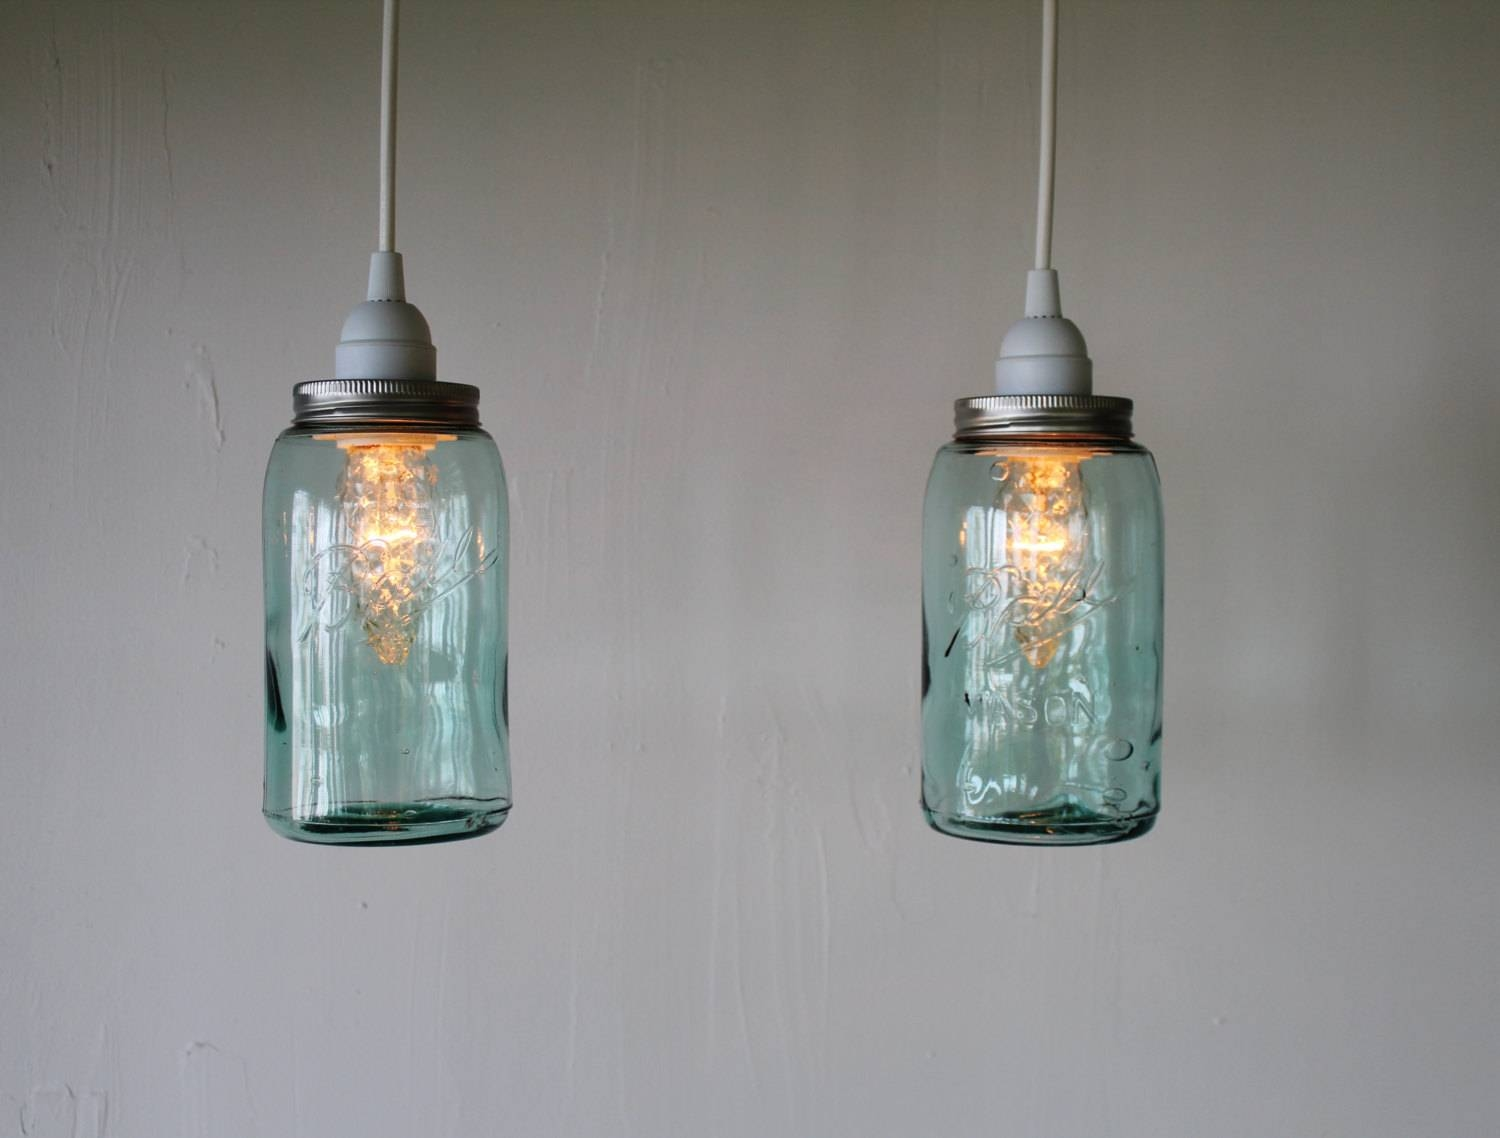 Mason Jar Pendant Lights. One Mason Jar Track Light Single Vintage pertaining to Blue Mason Jar Lights Fixtures (Image 12 of 15)